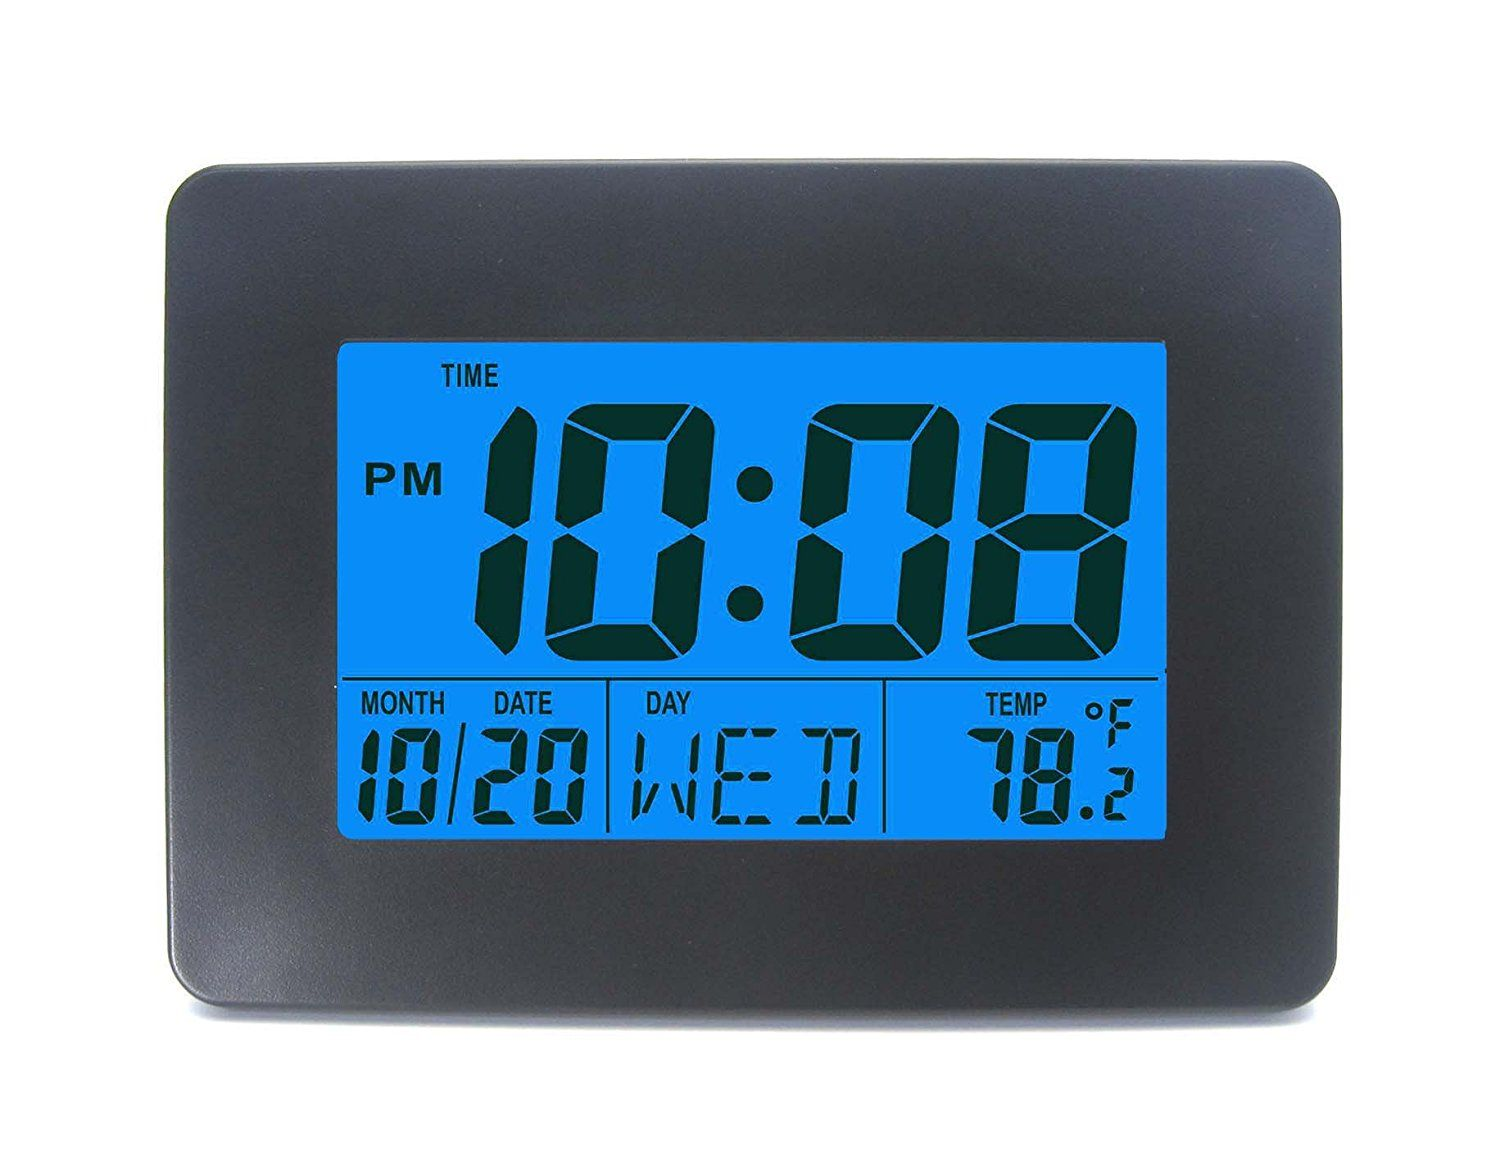 Dykie Rs8725a Digital Wall Alarm Clock With Date Week And Temperature Display Snooze And Large Display Blue Backlight Clock Alarm Clock Digital Alarm Clock